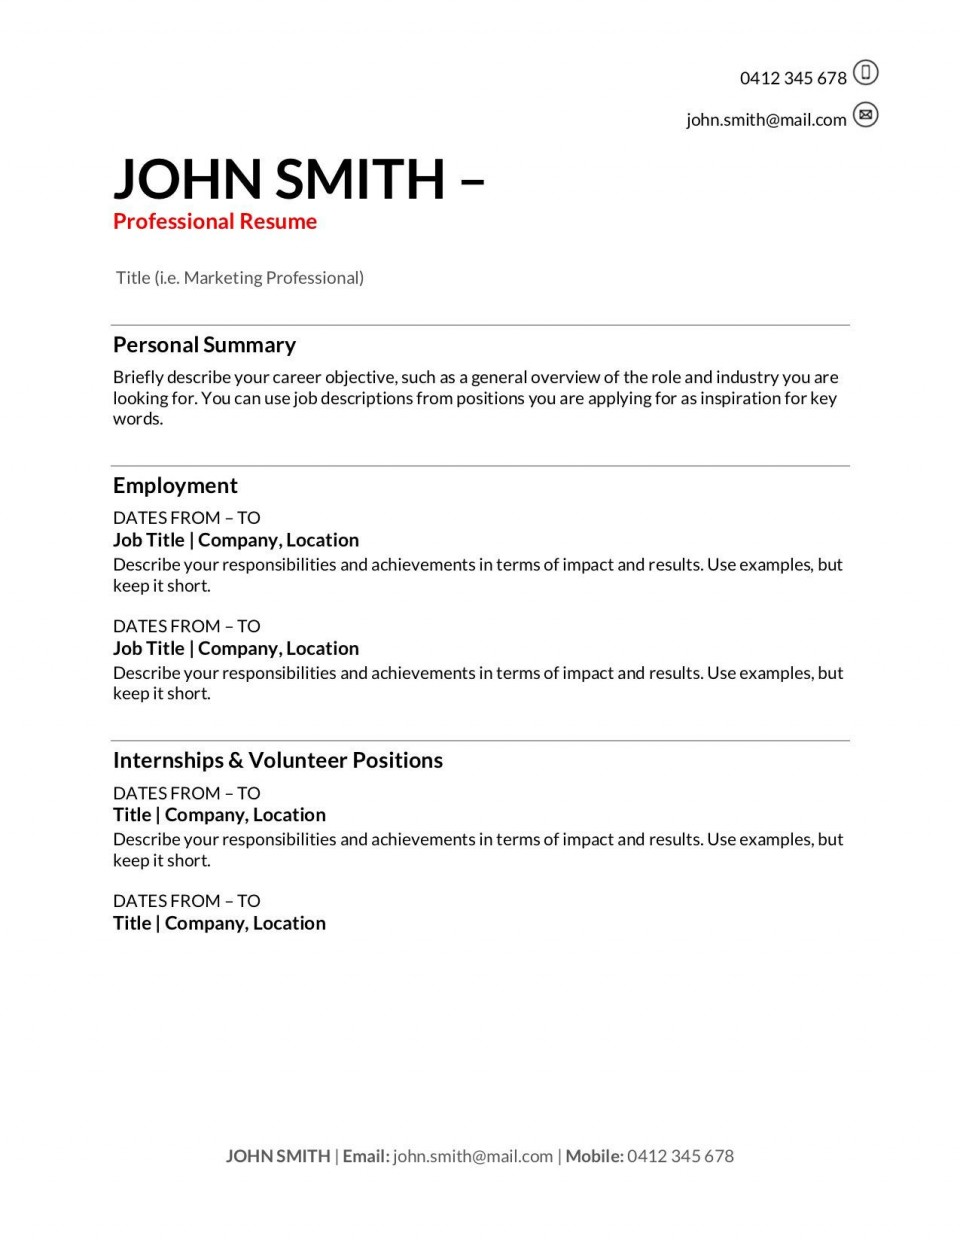 006 Impressive Resume Template For First Job High Def  Student Australia In School Teenager960